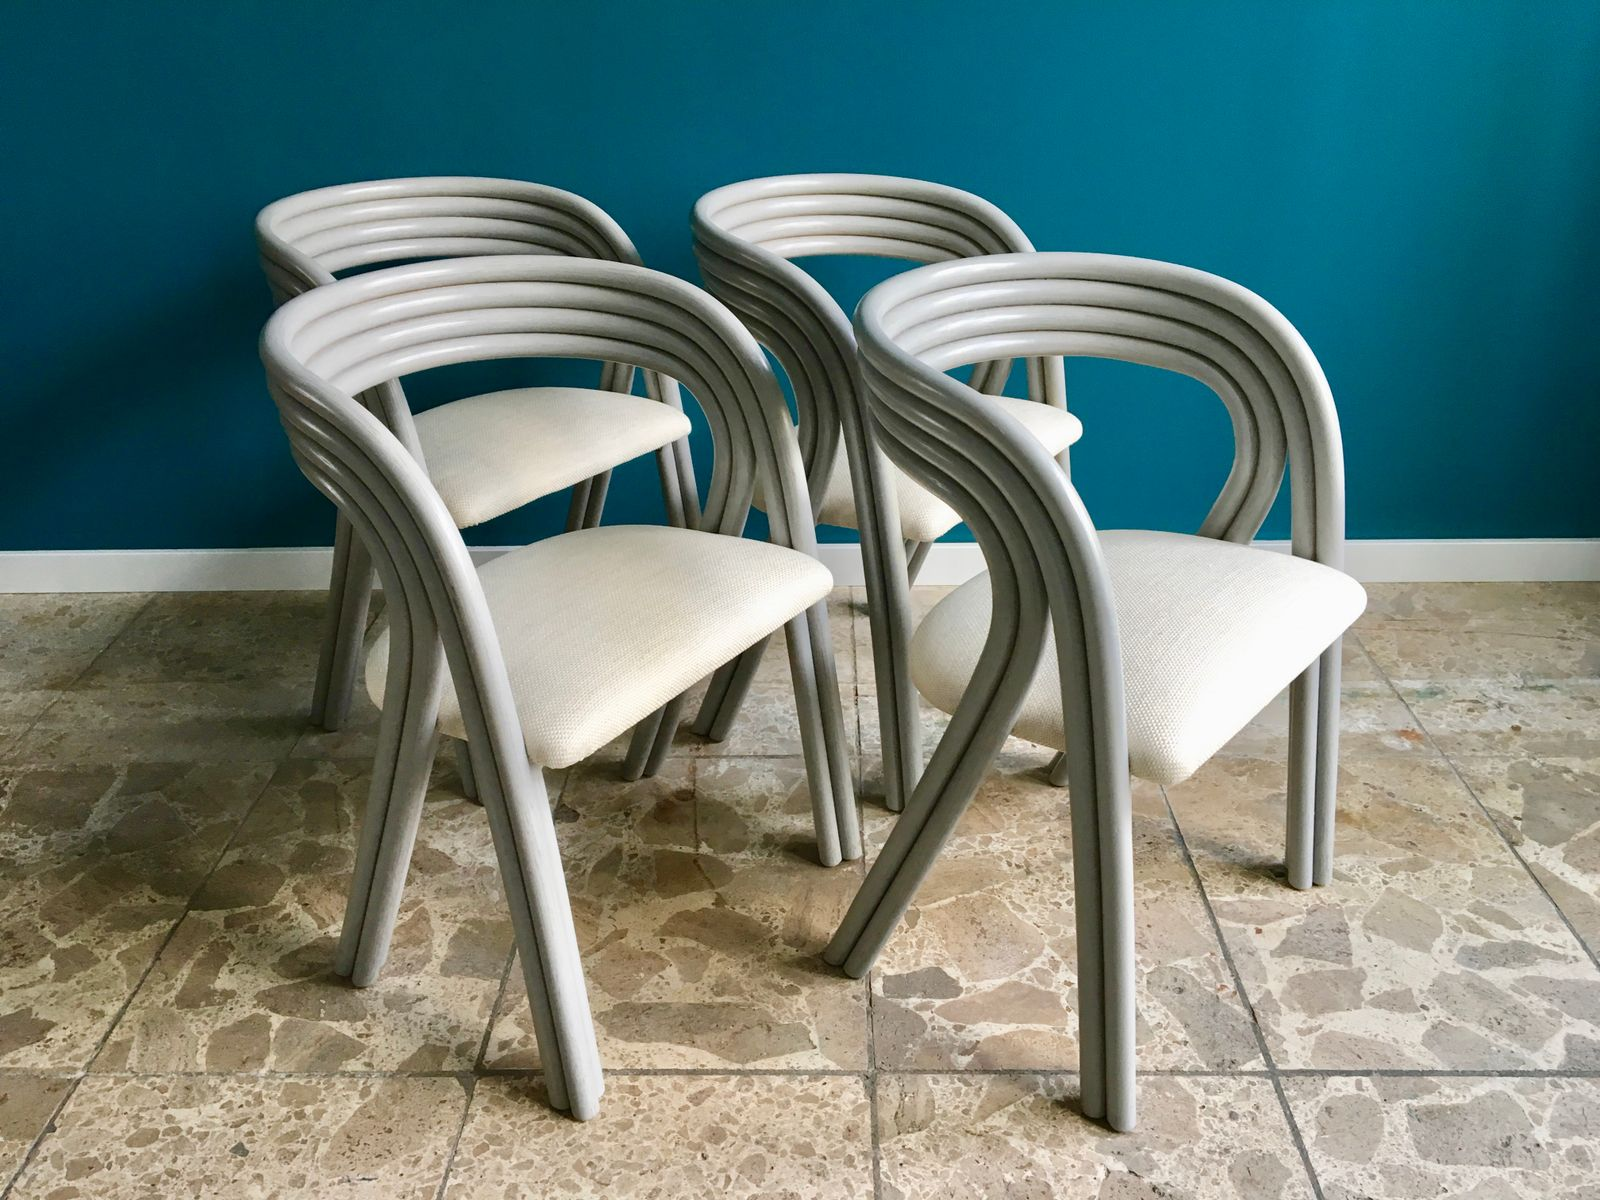 Vintage Dutch Dining Chairs by Axel Enthoven for Rohé Noordwolde Set of 4 & Vintage Dutch Dining Chairs by Axel Enthoven for Rohé Noordwolde ...